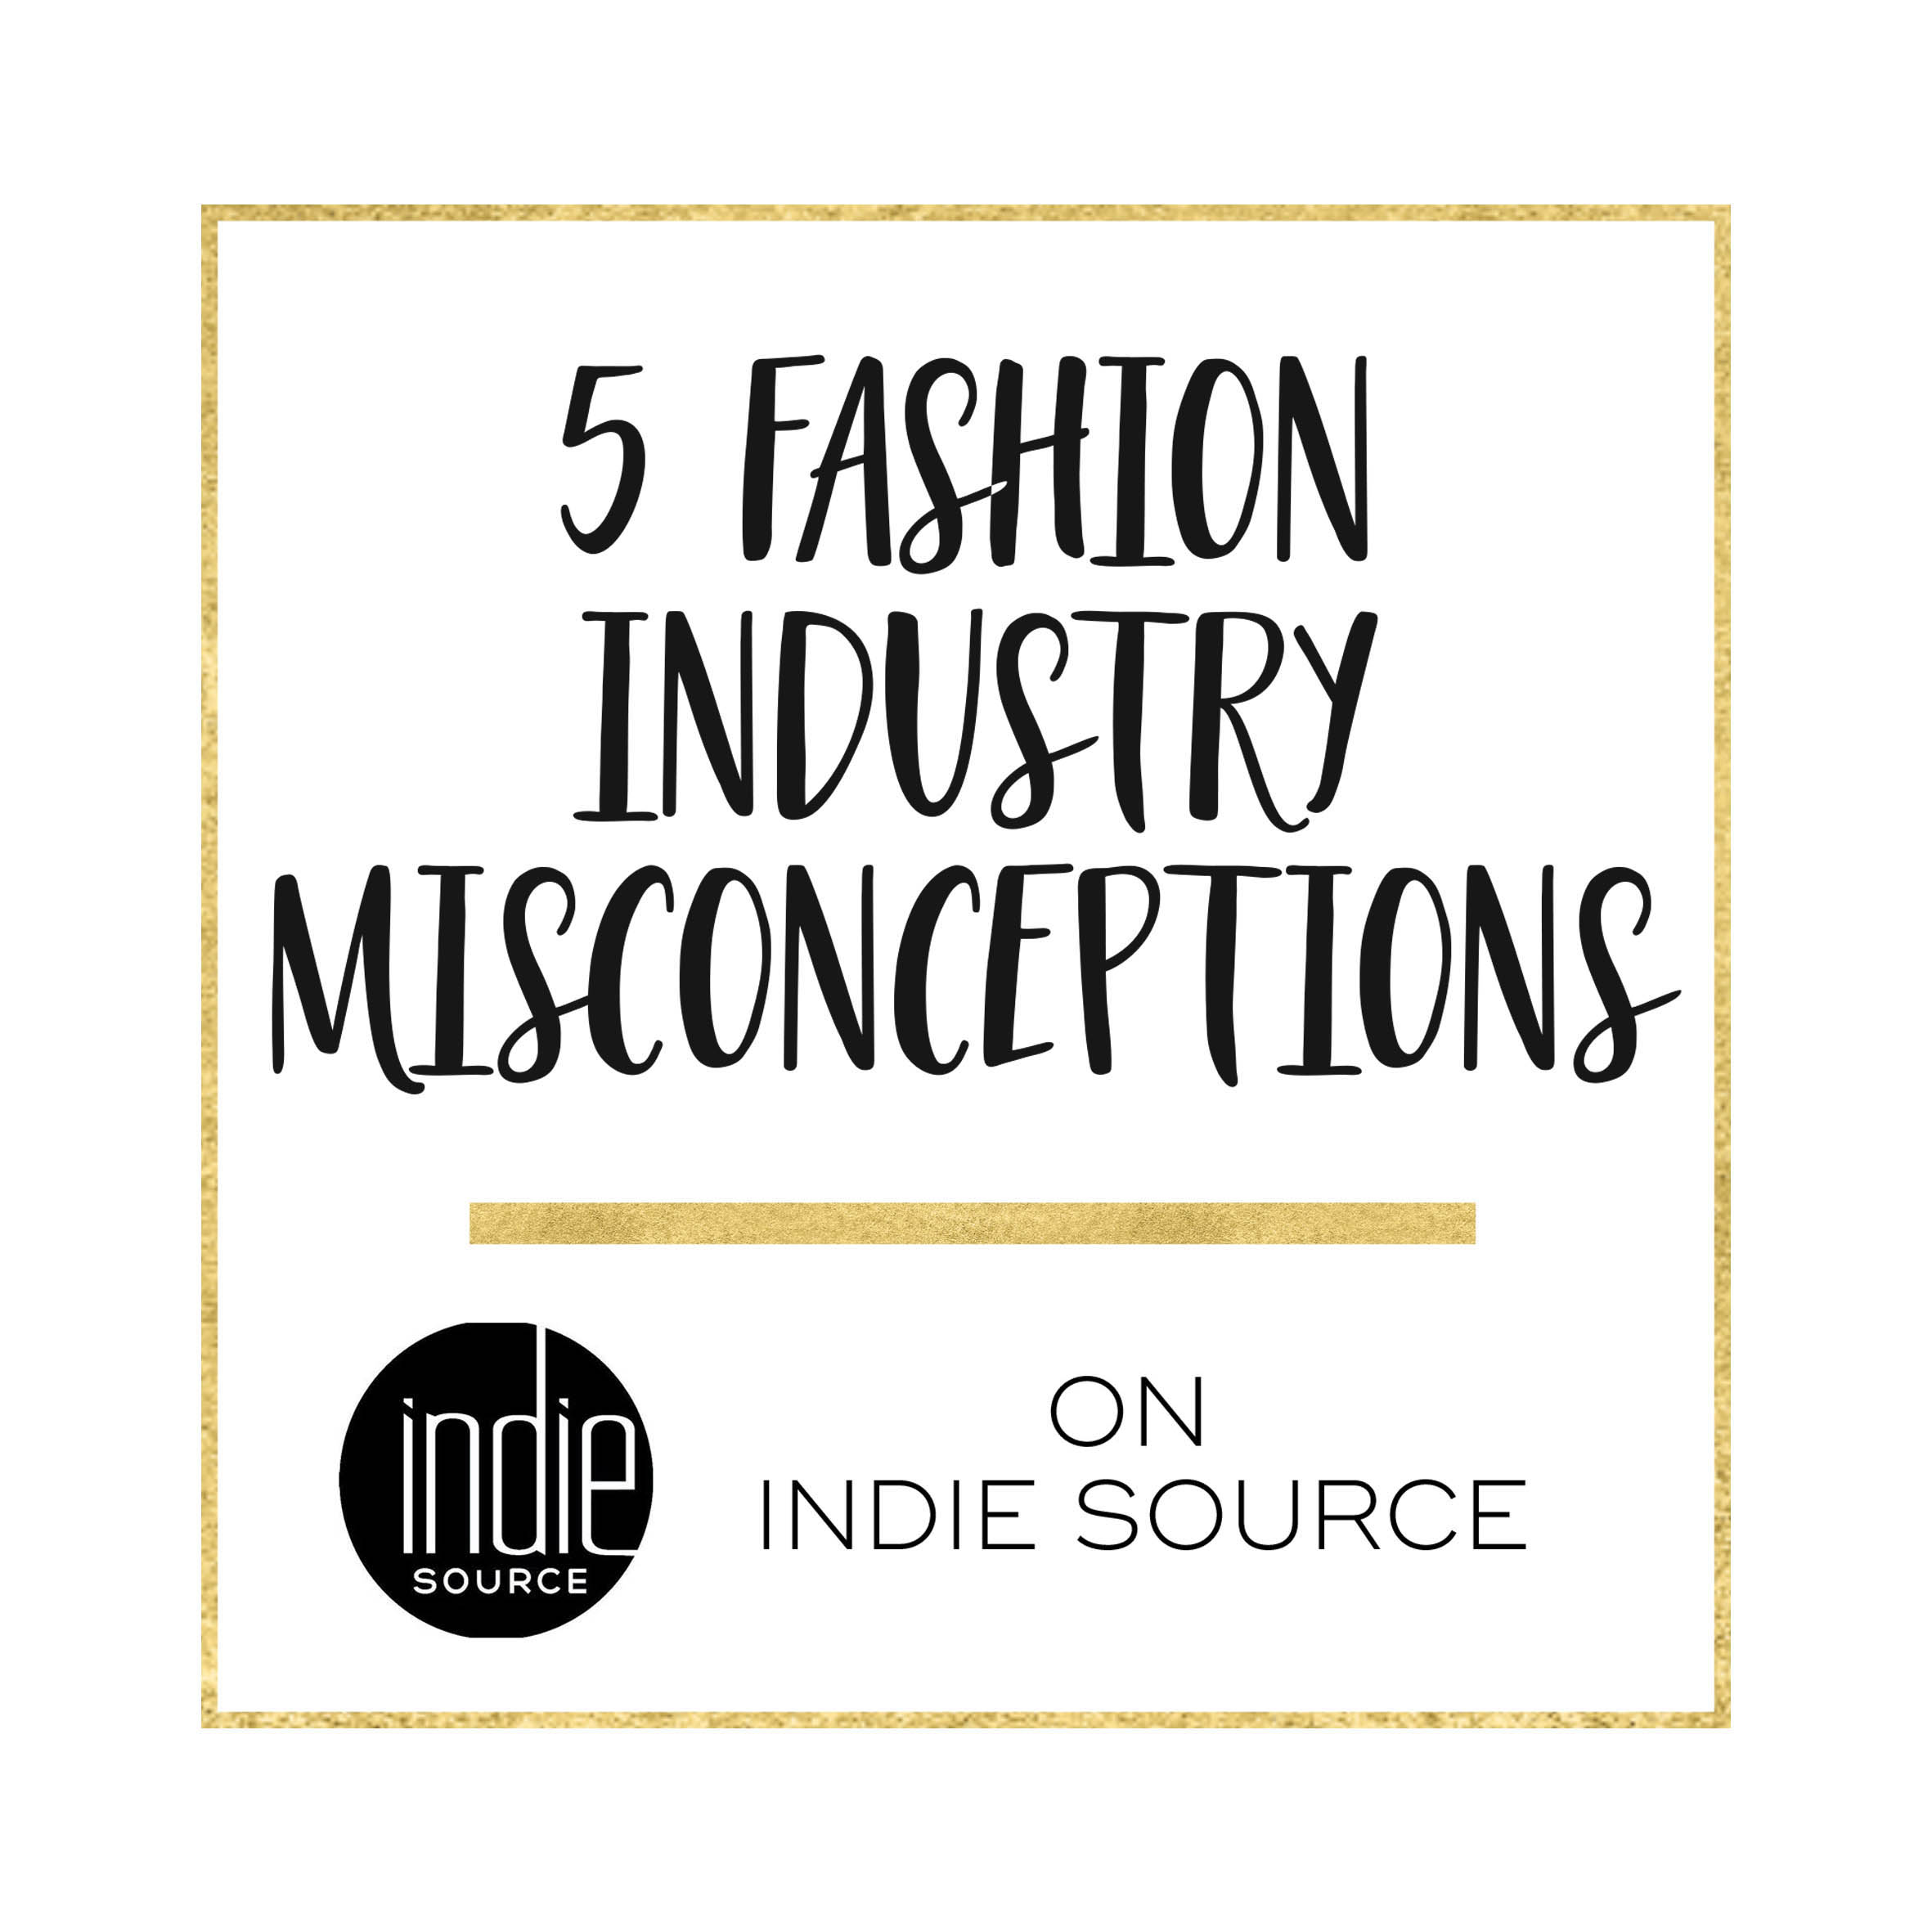 Misconceptions about fashion